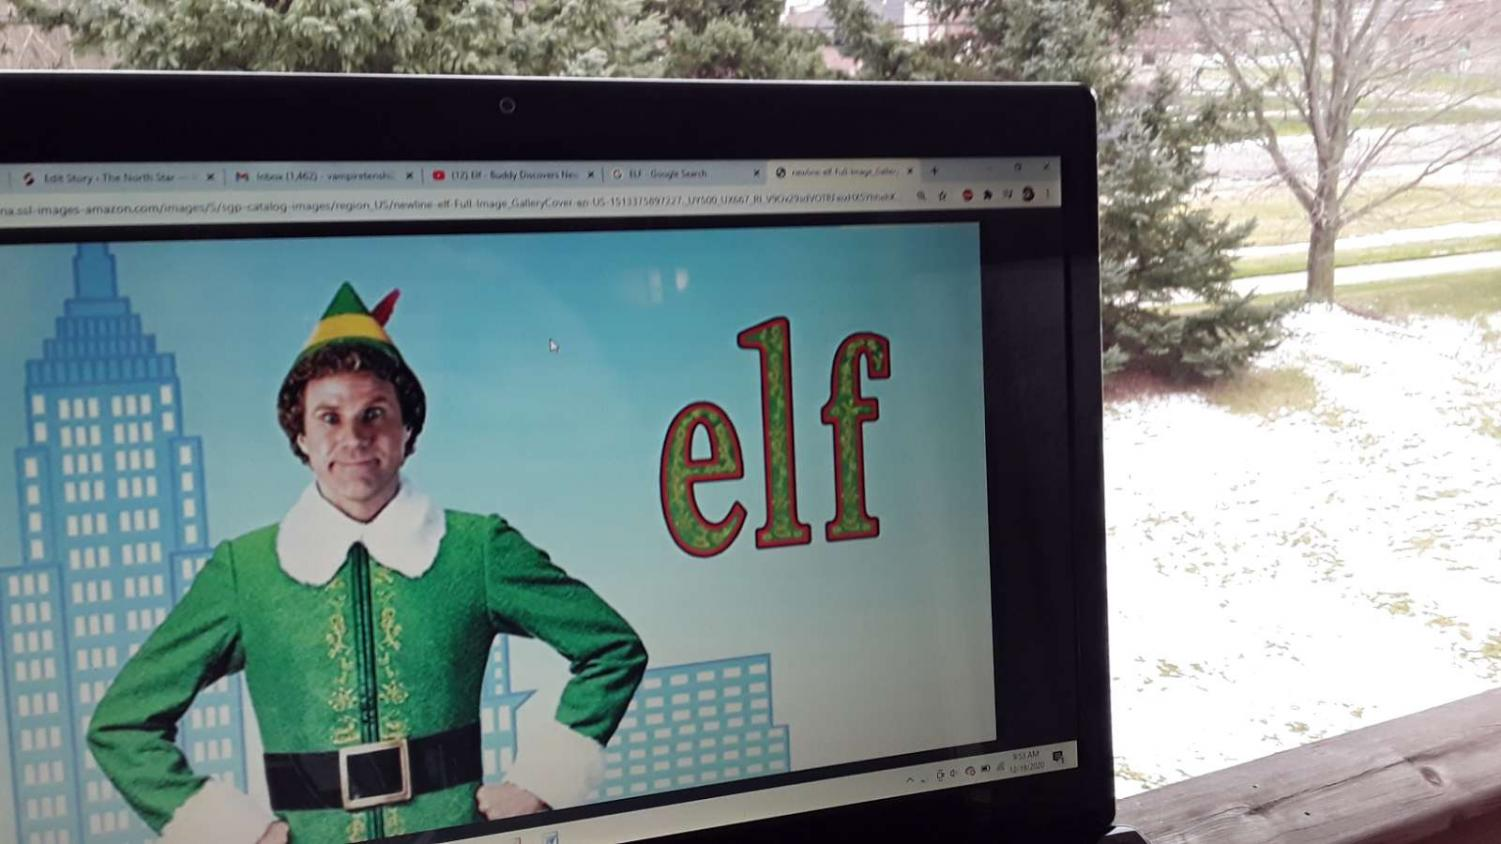 Will Ferral, pictured as Buddy The Elf. Photo Credit: Dominic Comfort